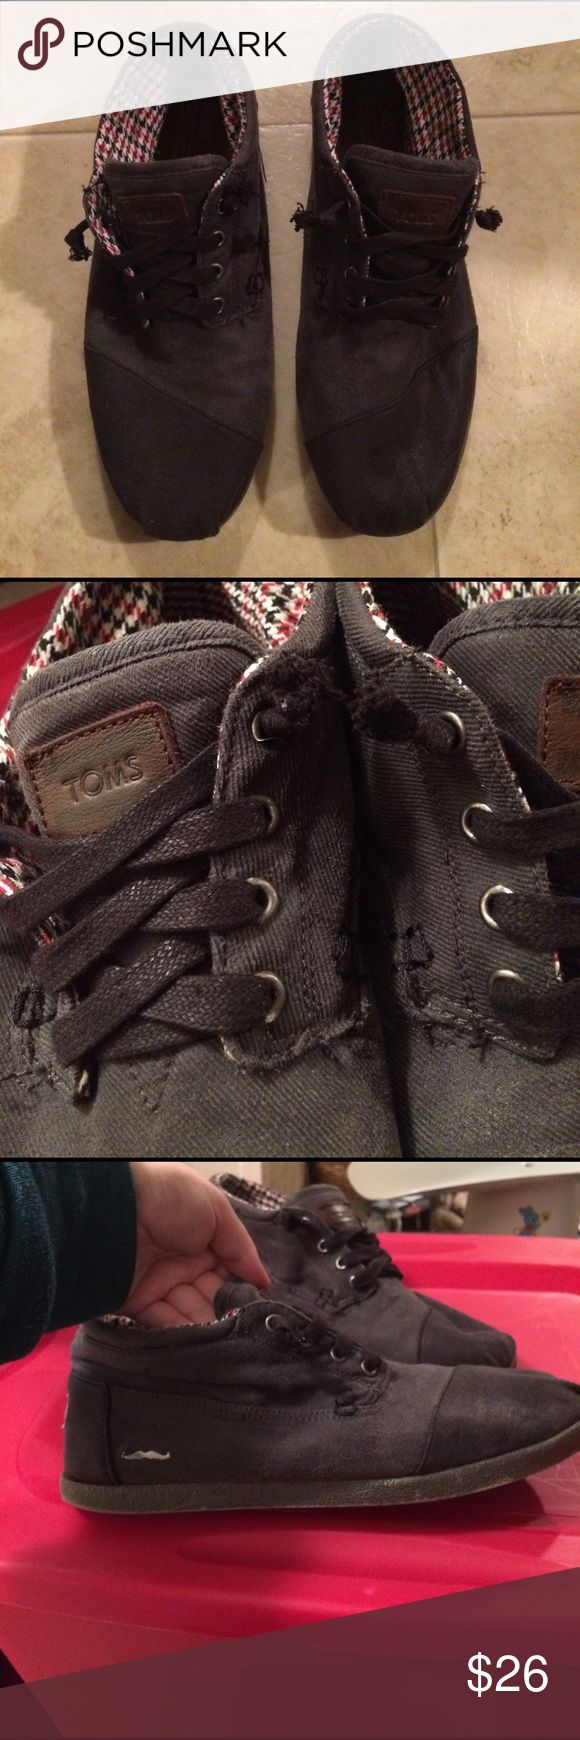 $22 men's toms canvas high top shoes euc Great condition! Minimal wear as you can see in the pics. TOMS Shoes